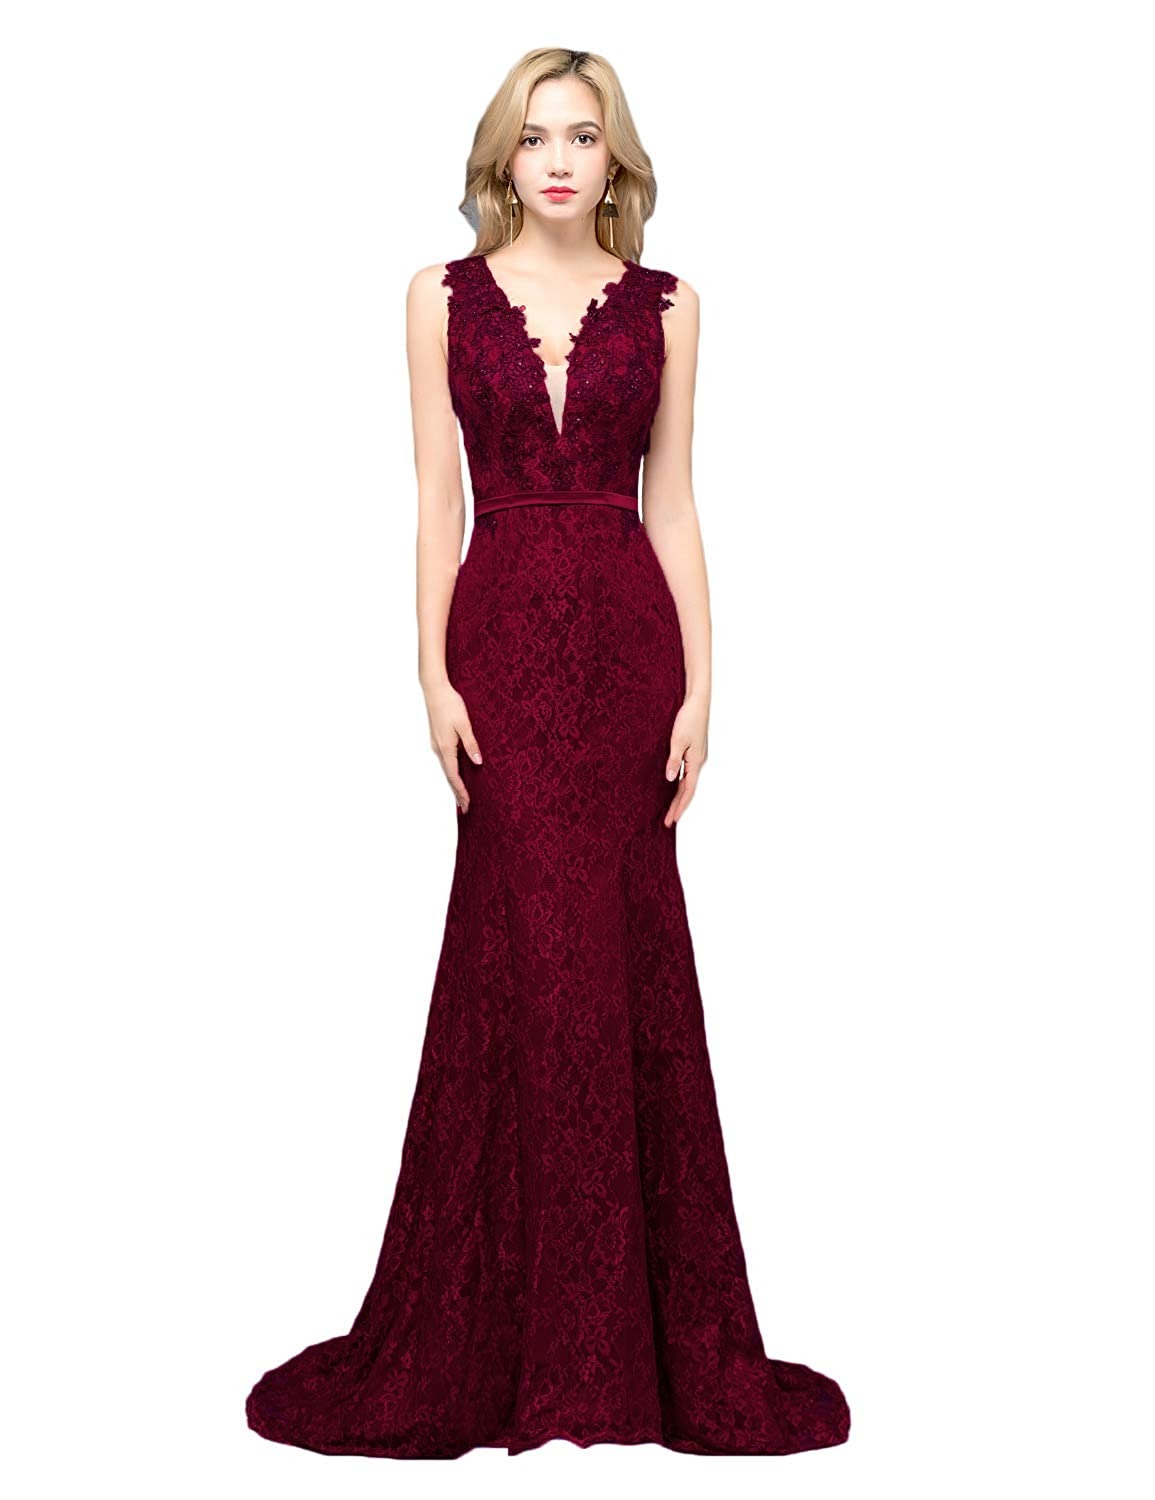 Burgundy CIRCLEWLD Sheer Plunging V Neck Lace Prom Dresses Mermaid Evening Gown Womens P197